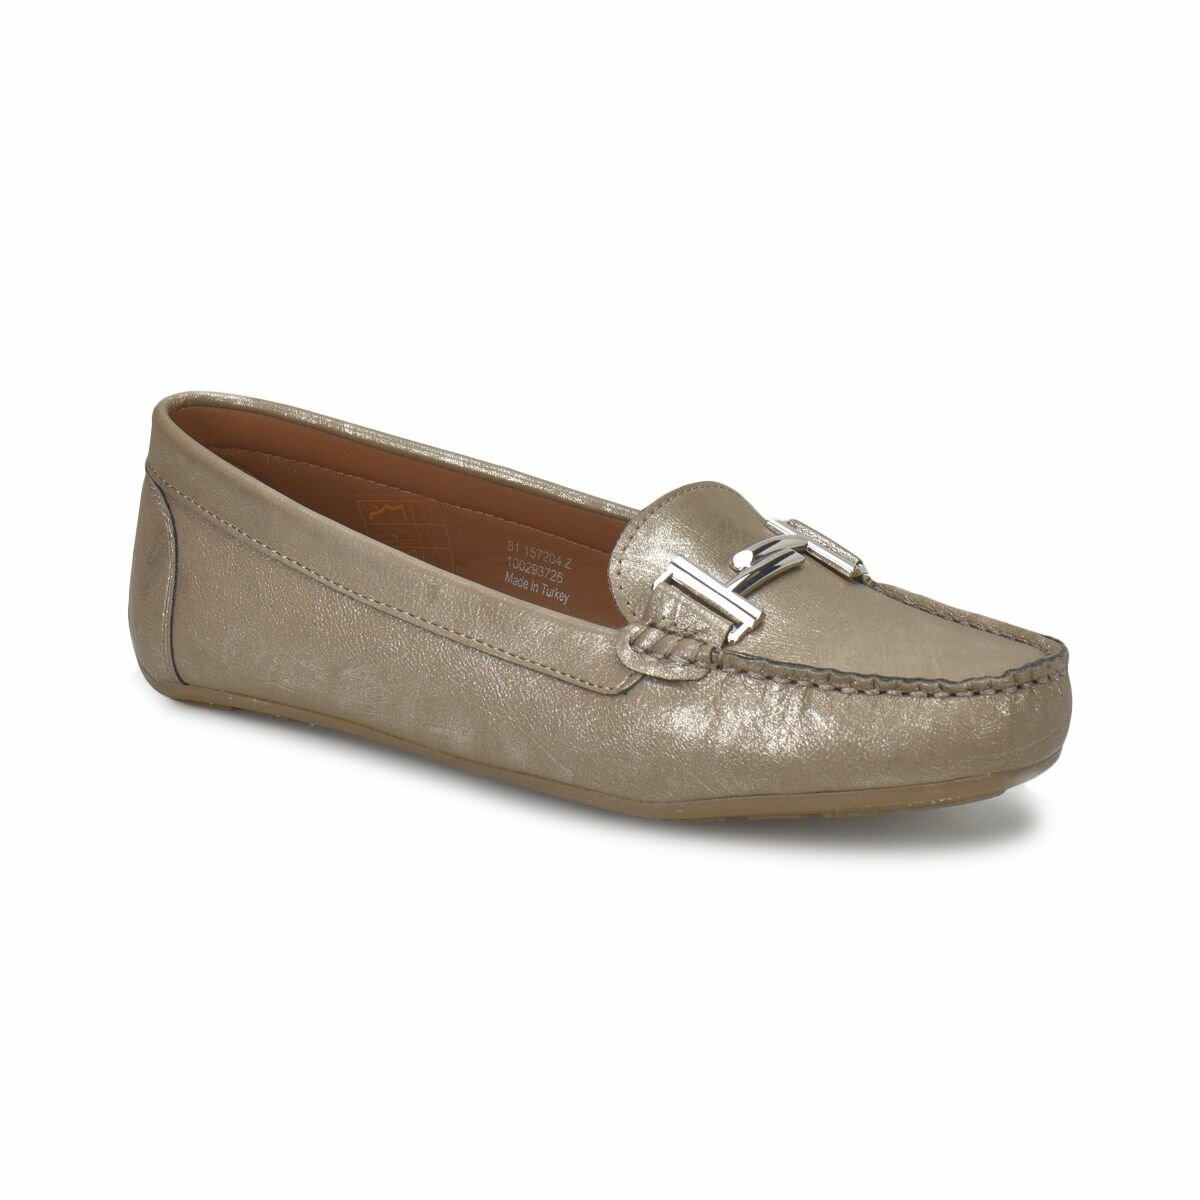 FLO 81. 157204.Z Bronze Women 'S Modern Shoes Polaris